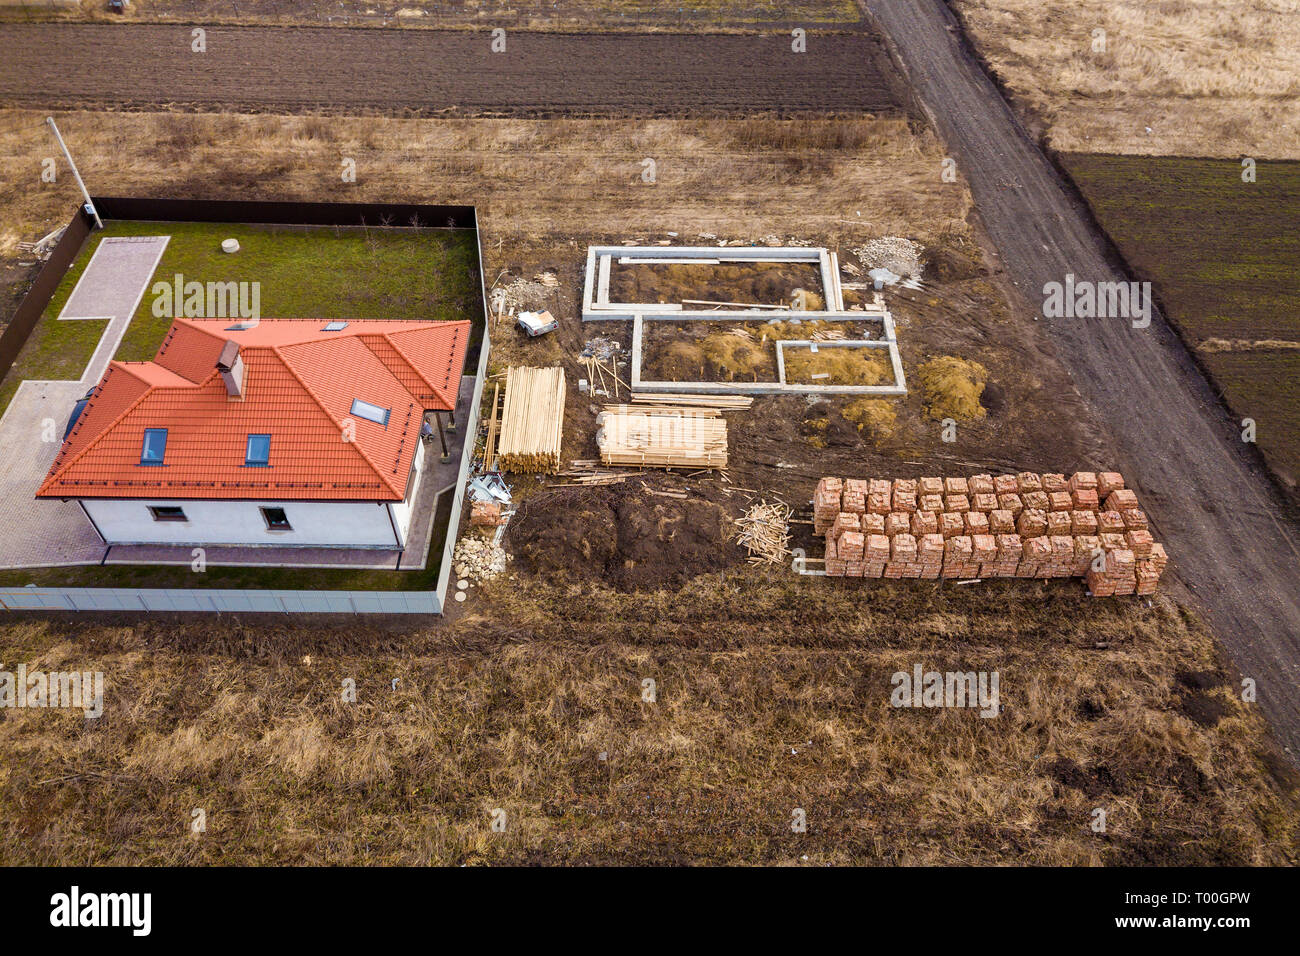 Aerial view of new house roof with attic windows and building site, foundation of future house, stacks of bricks and building timber logs for construc Stock Photo